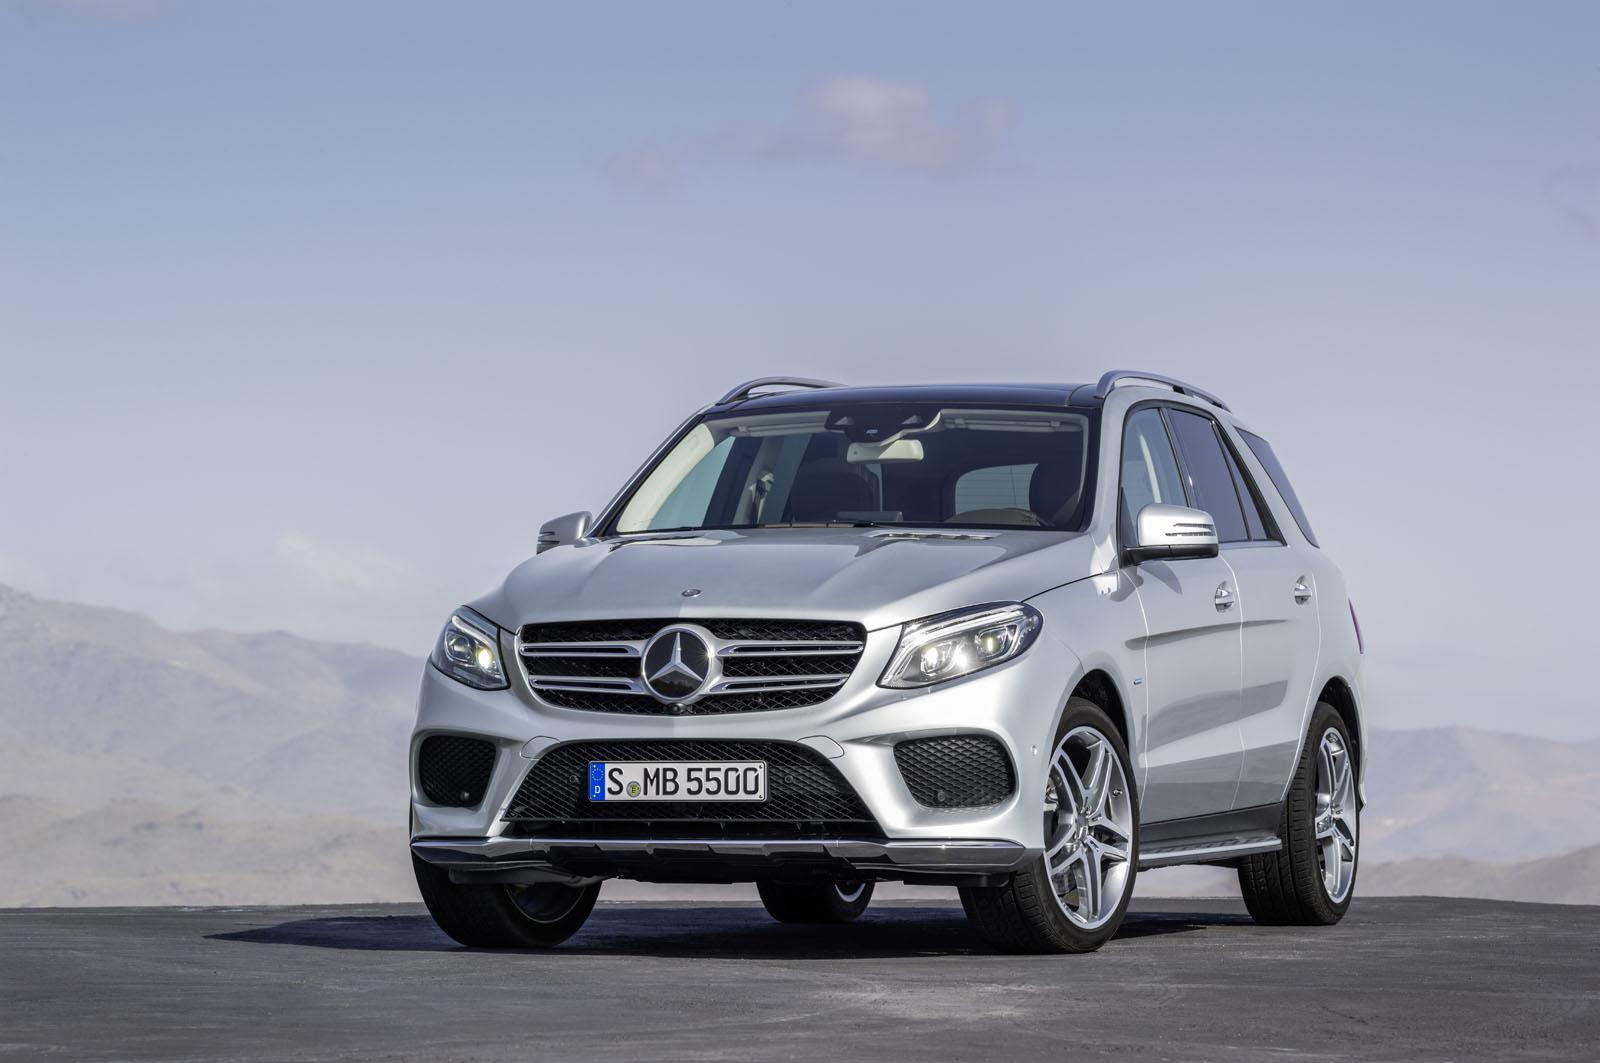 Officially Announced: The 2016 Mercedes-Benz GLE Class